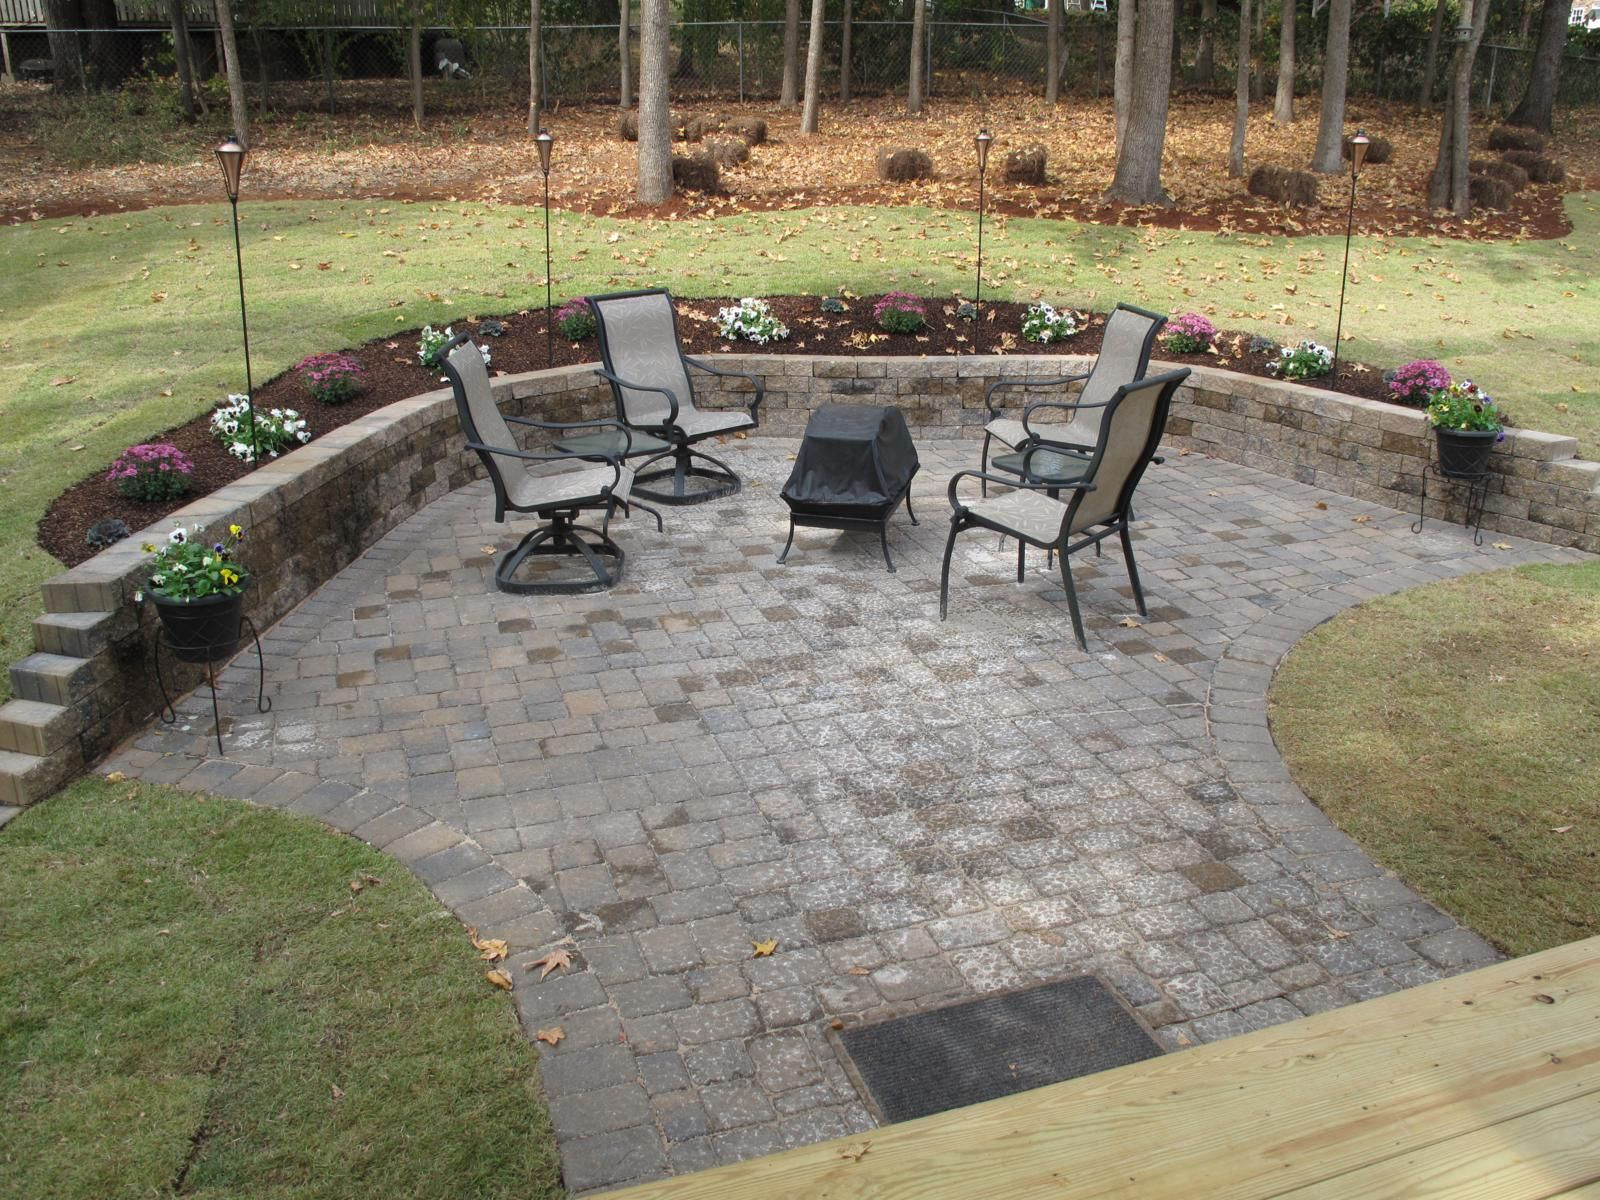 pavers patio ideas best 20 paver patio designs ideas on pinterest stone patio best 20 paver - Stone Patio Ideas On A Budget